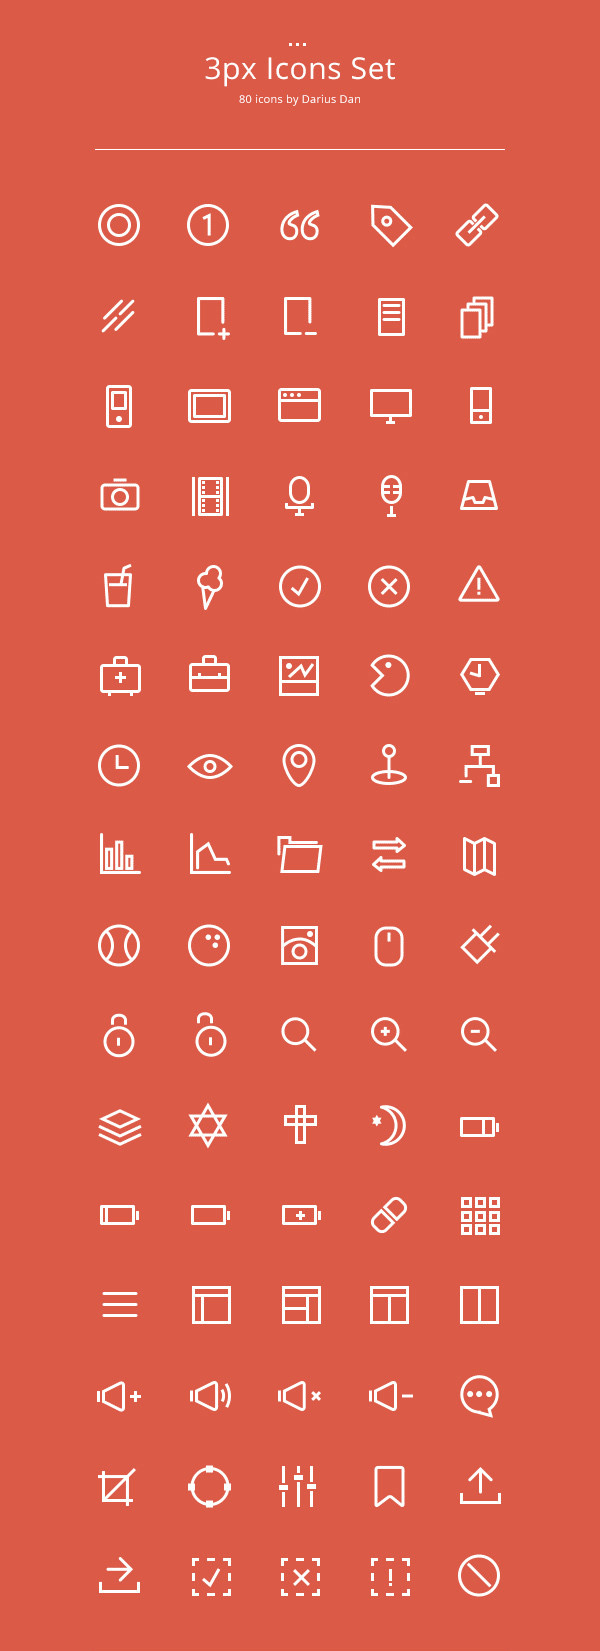 3ox Outline Icons Set